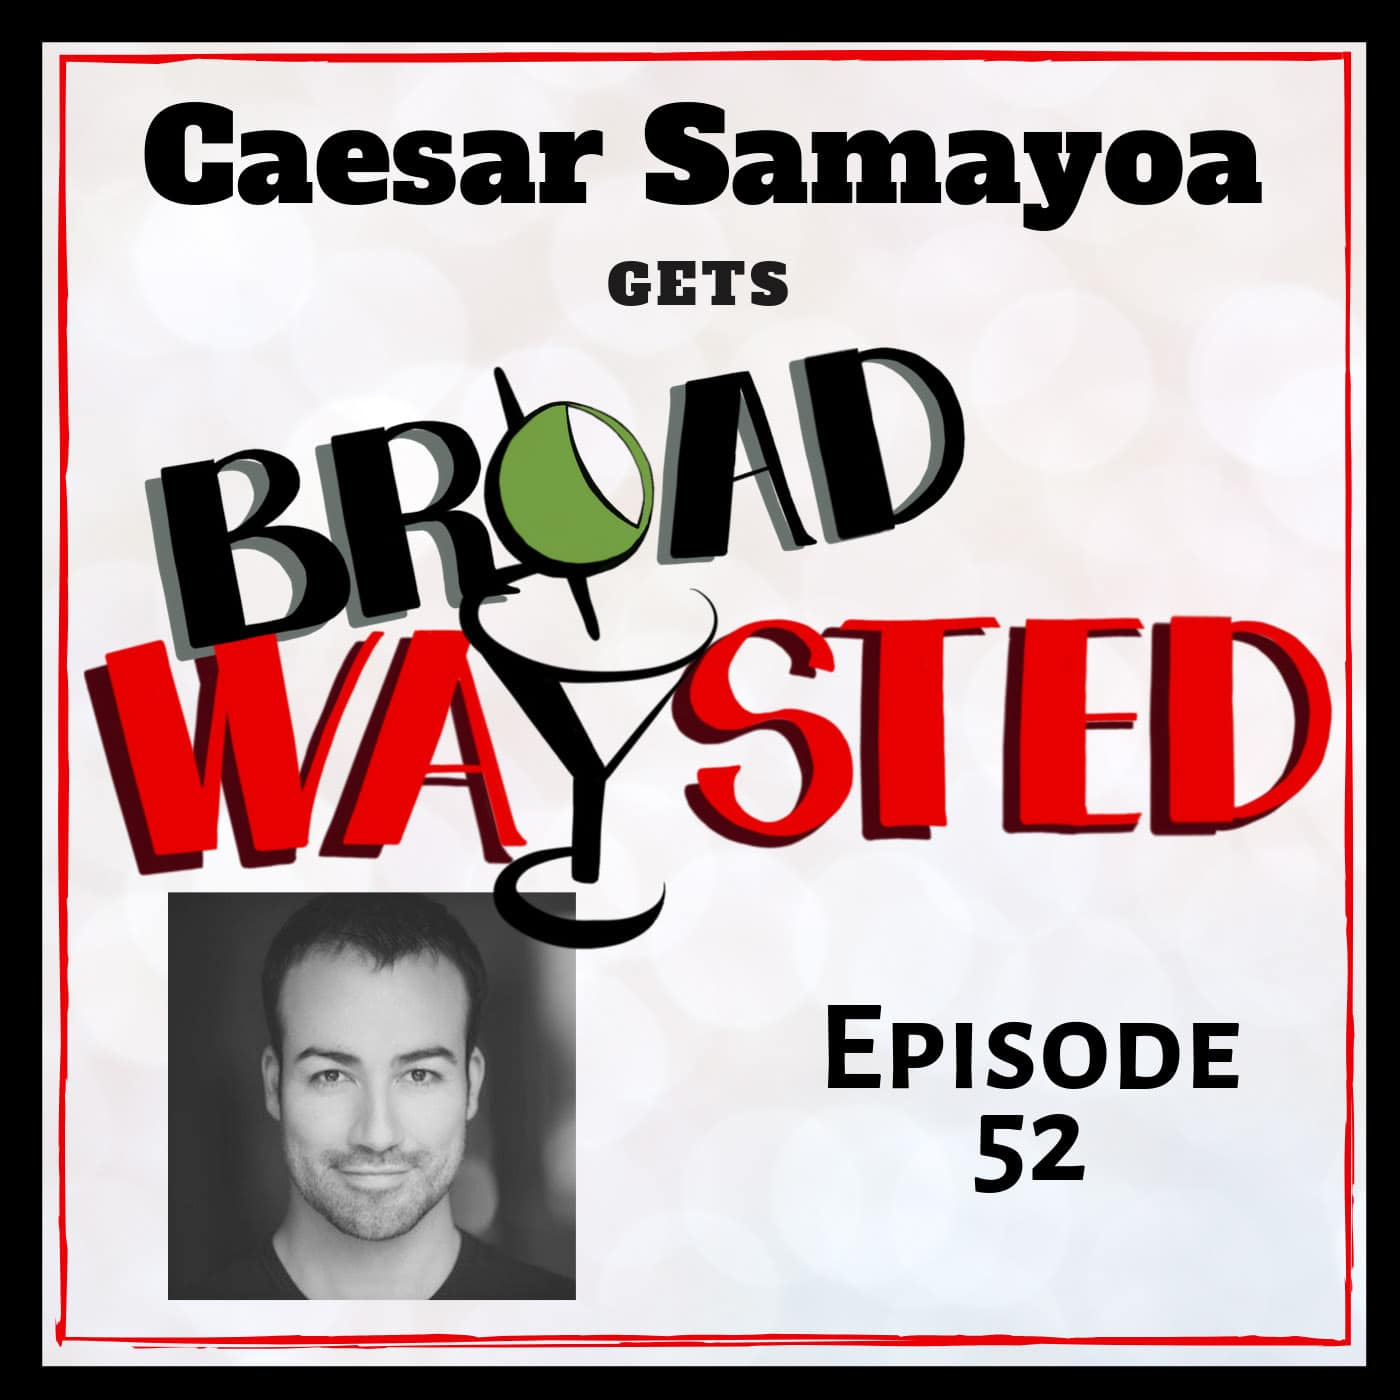 Broadwaysted Ep 52 Caesar Samayoa